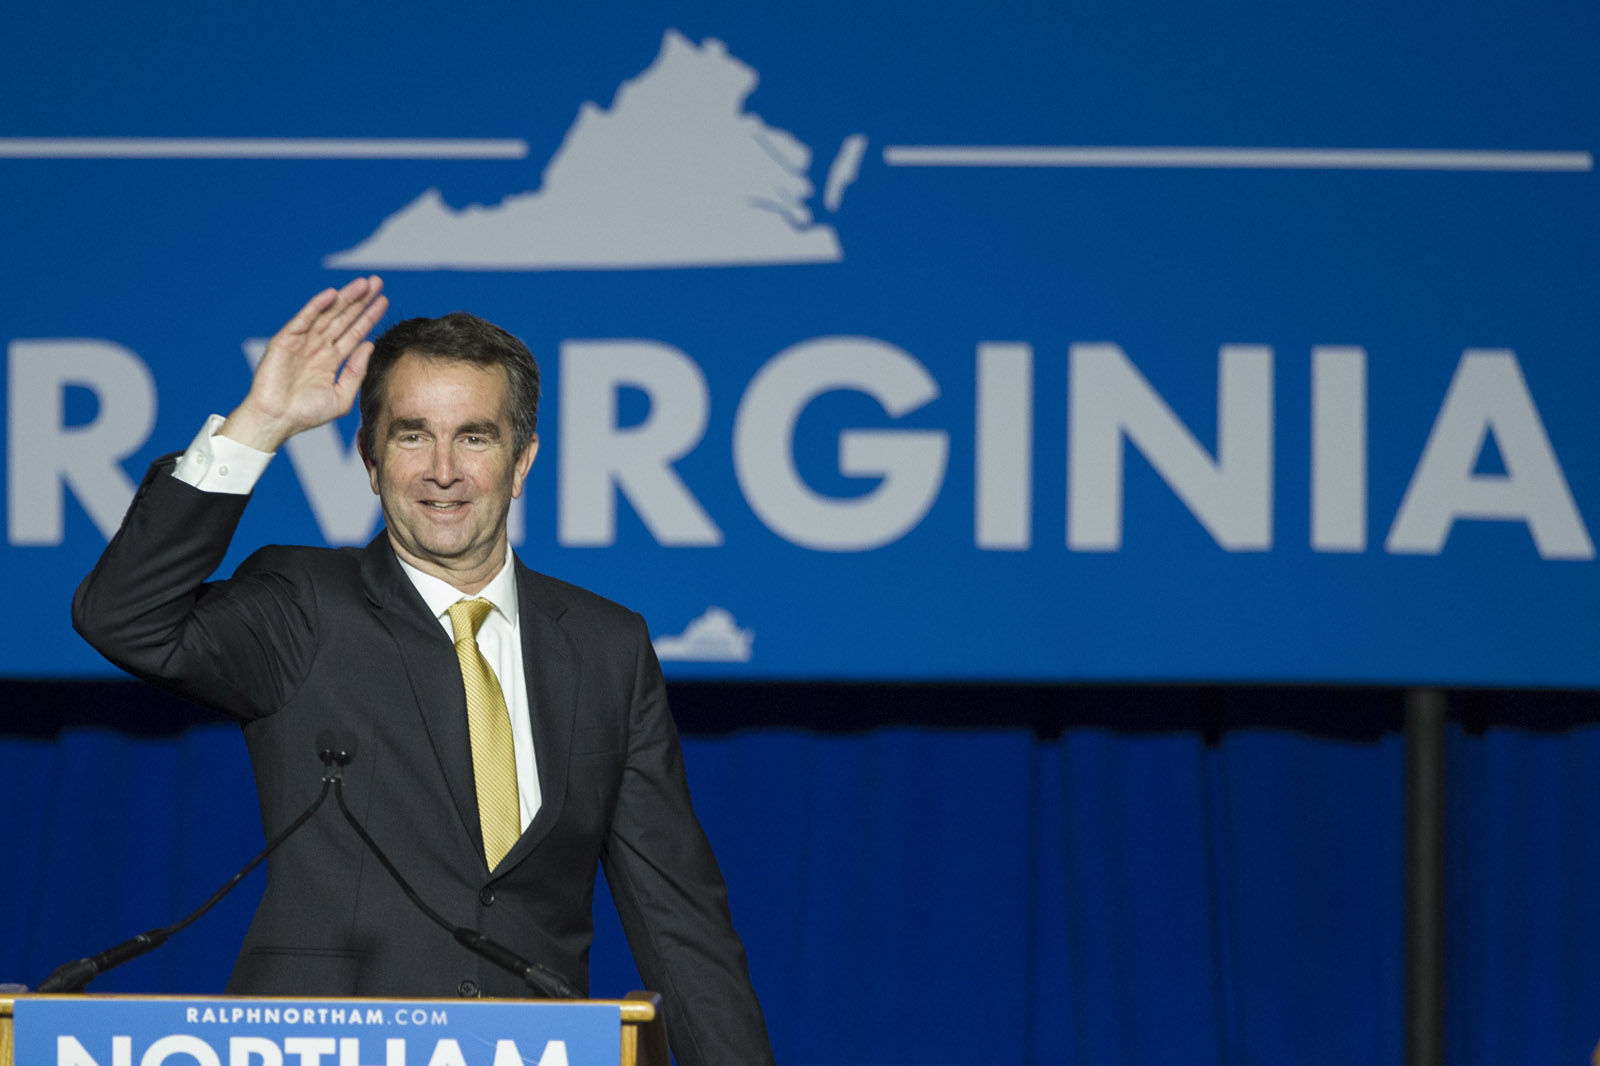 Virginia Democratic Gov. elect Ralph Northam addresses supporters and at the Northam For Governor election night party at George Mason University in Fairfax, Va., Tuesday, Nov. 7, 2017. Northam defeated Republican Ed Gillespie. (AP Photo/Cliff Owen)